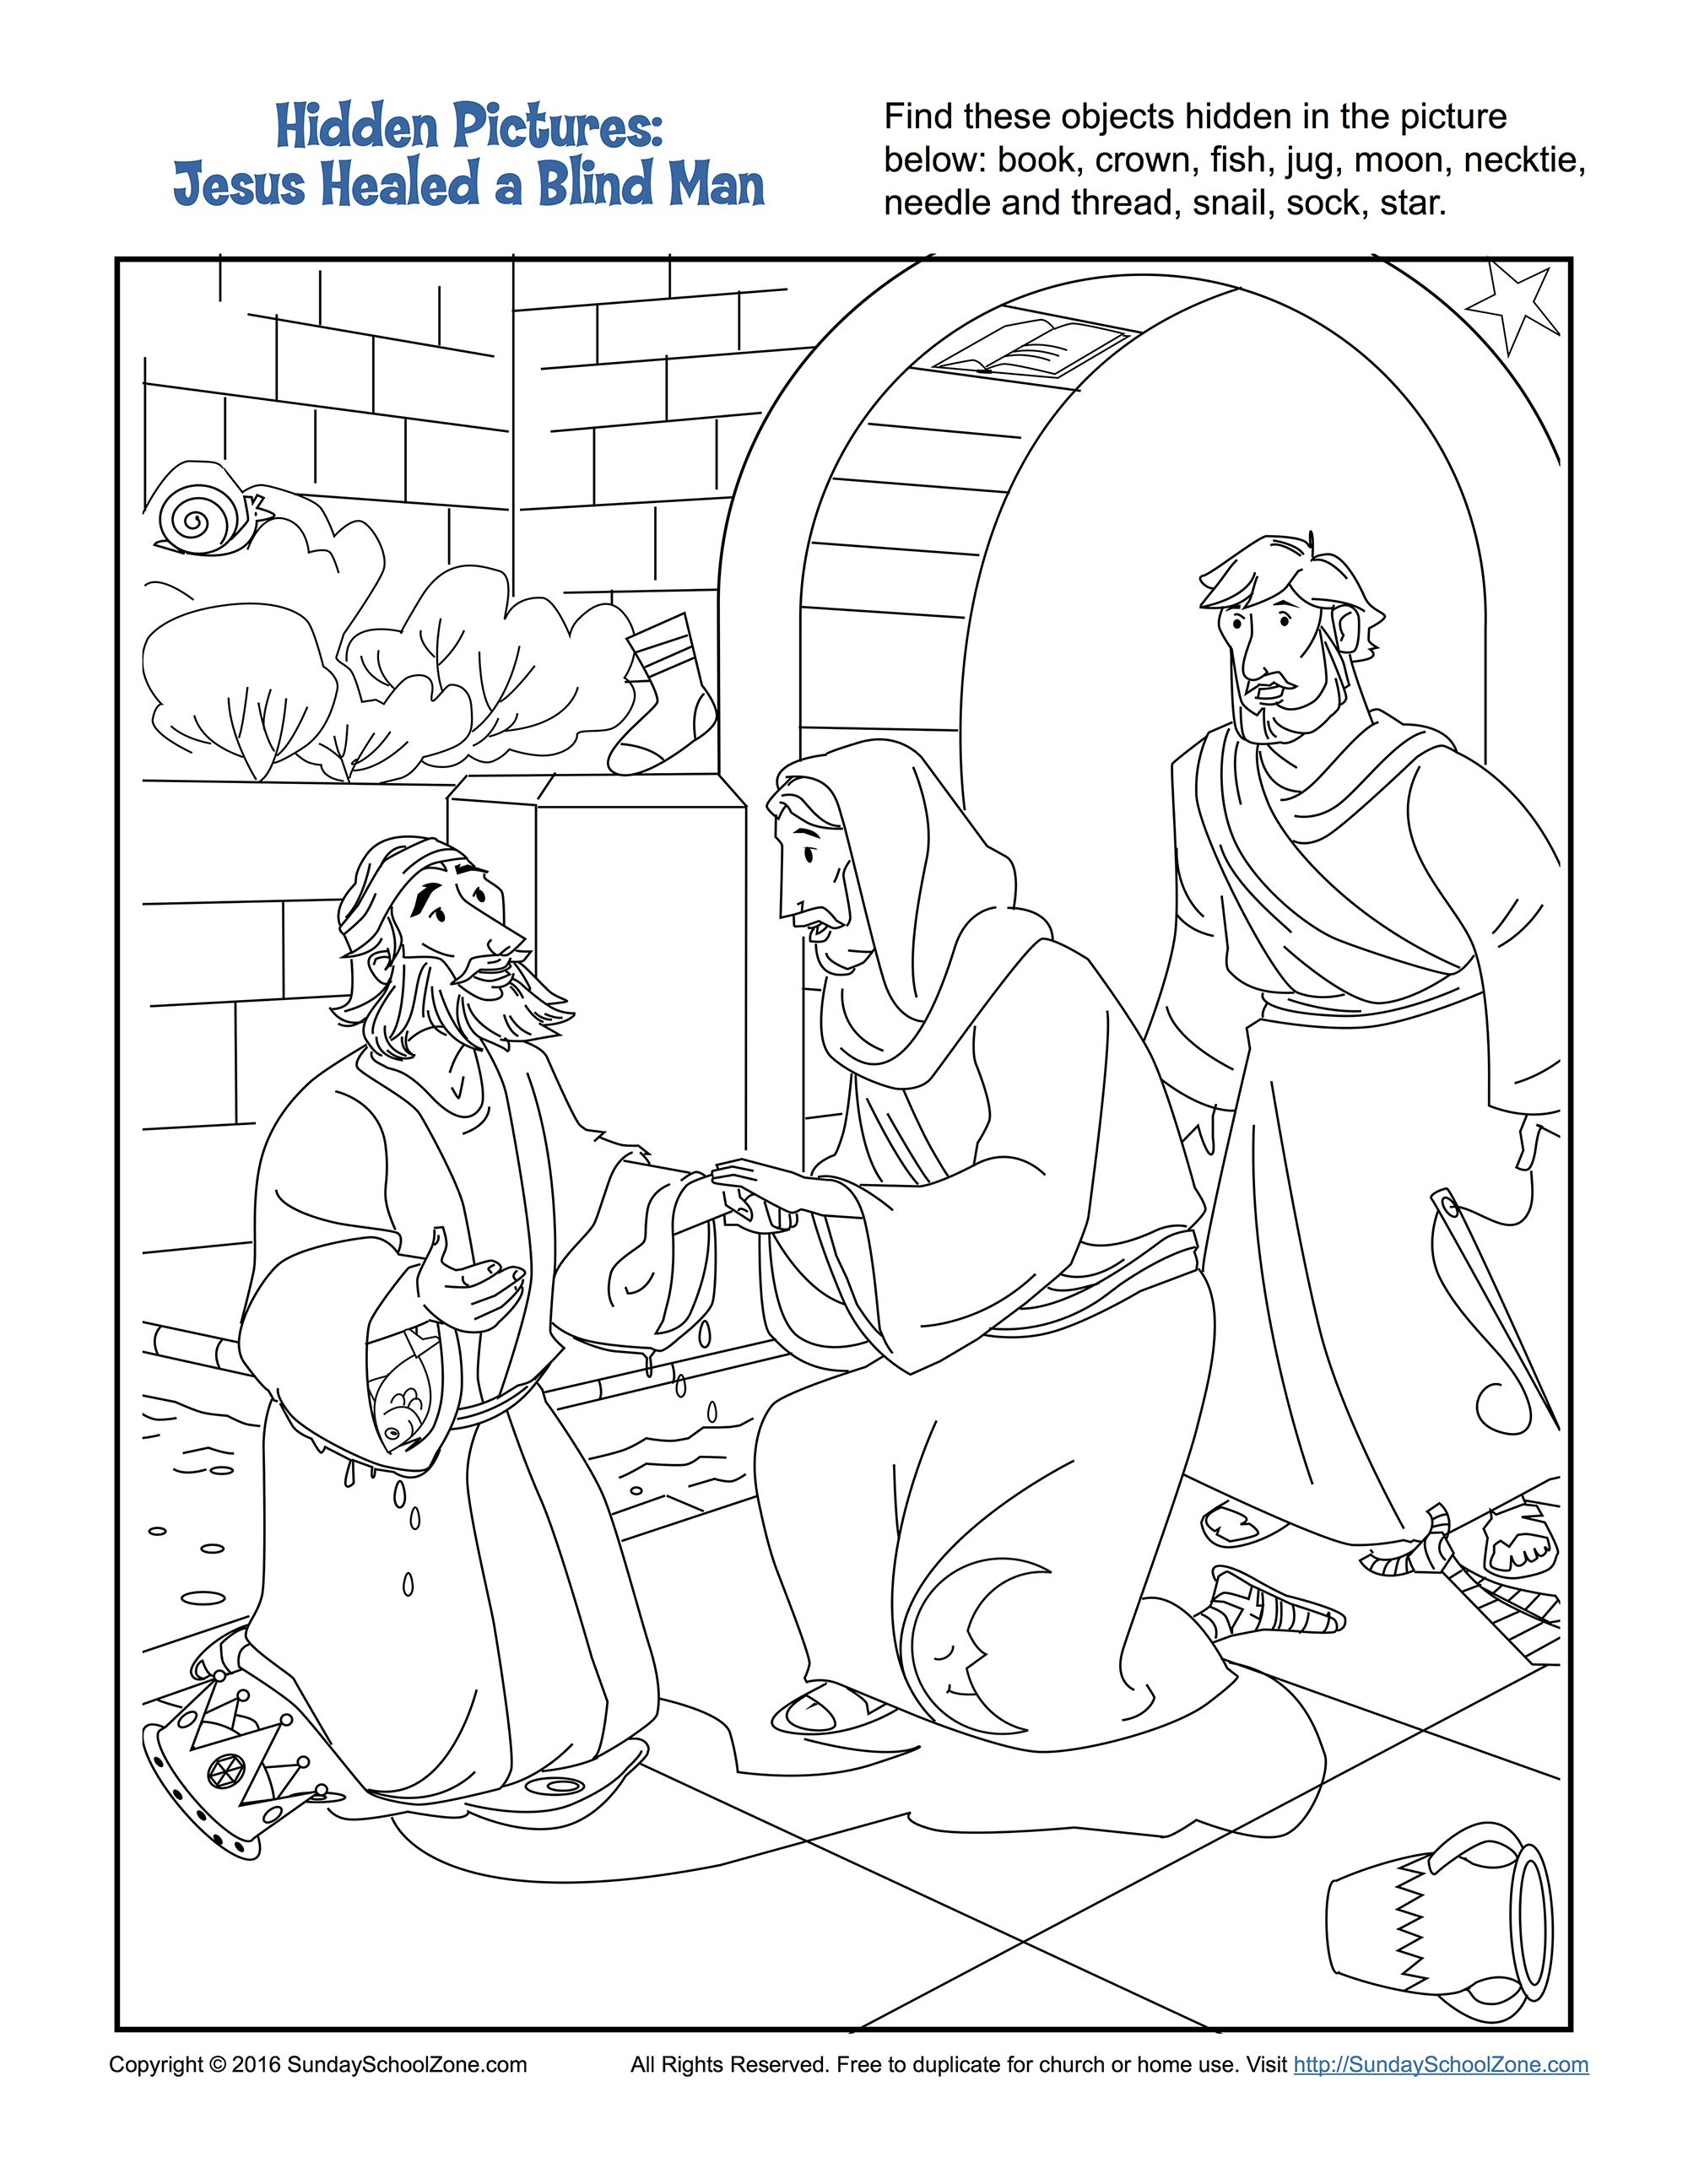 Jesus Healed A Man Born Blind Hidden Pictures Activity Bible